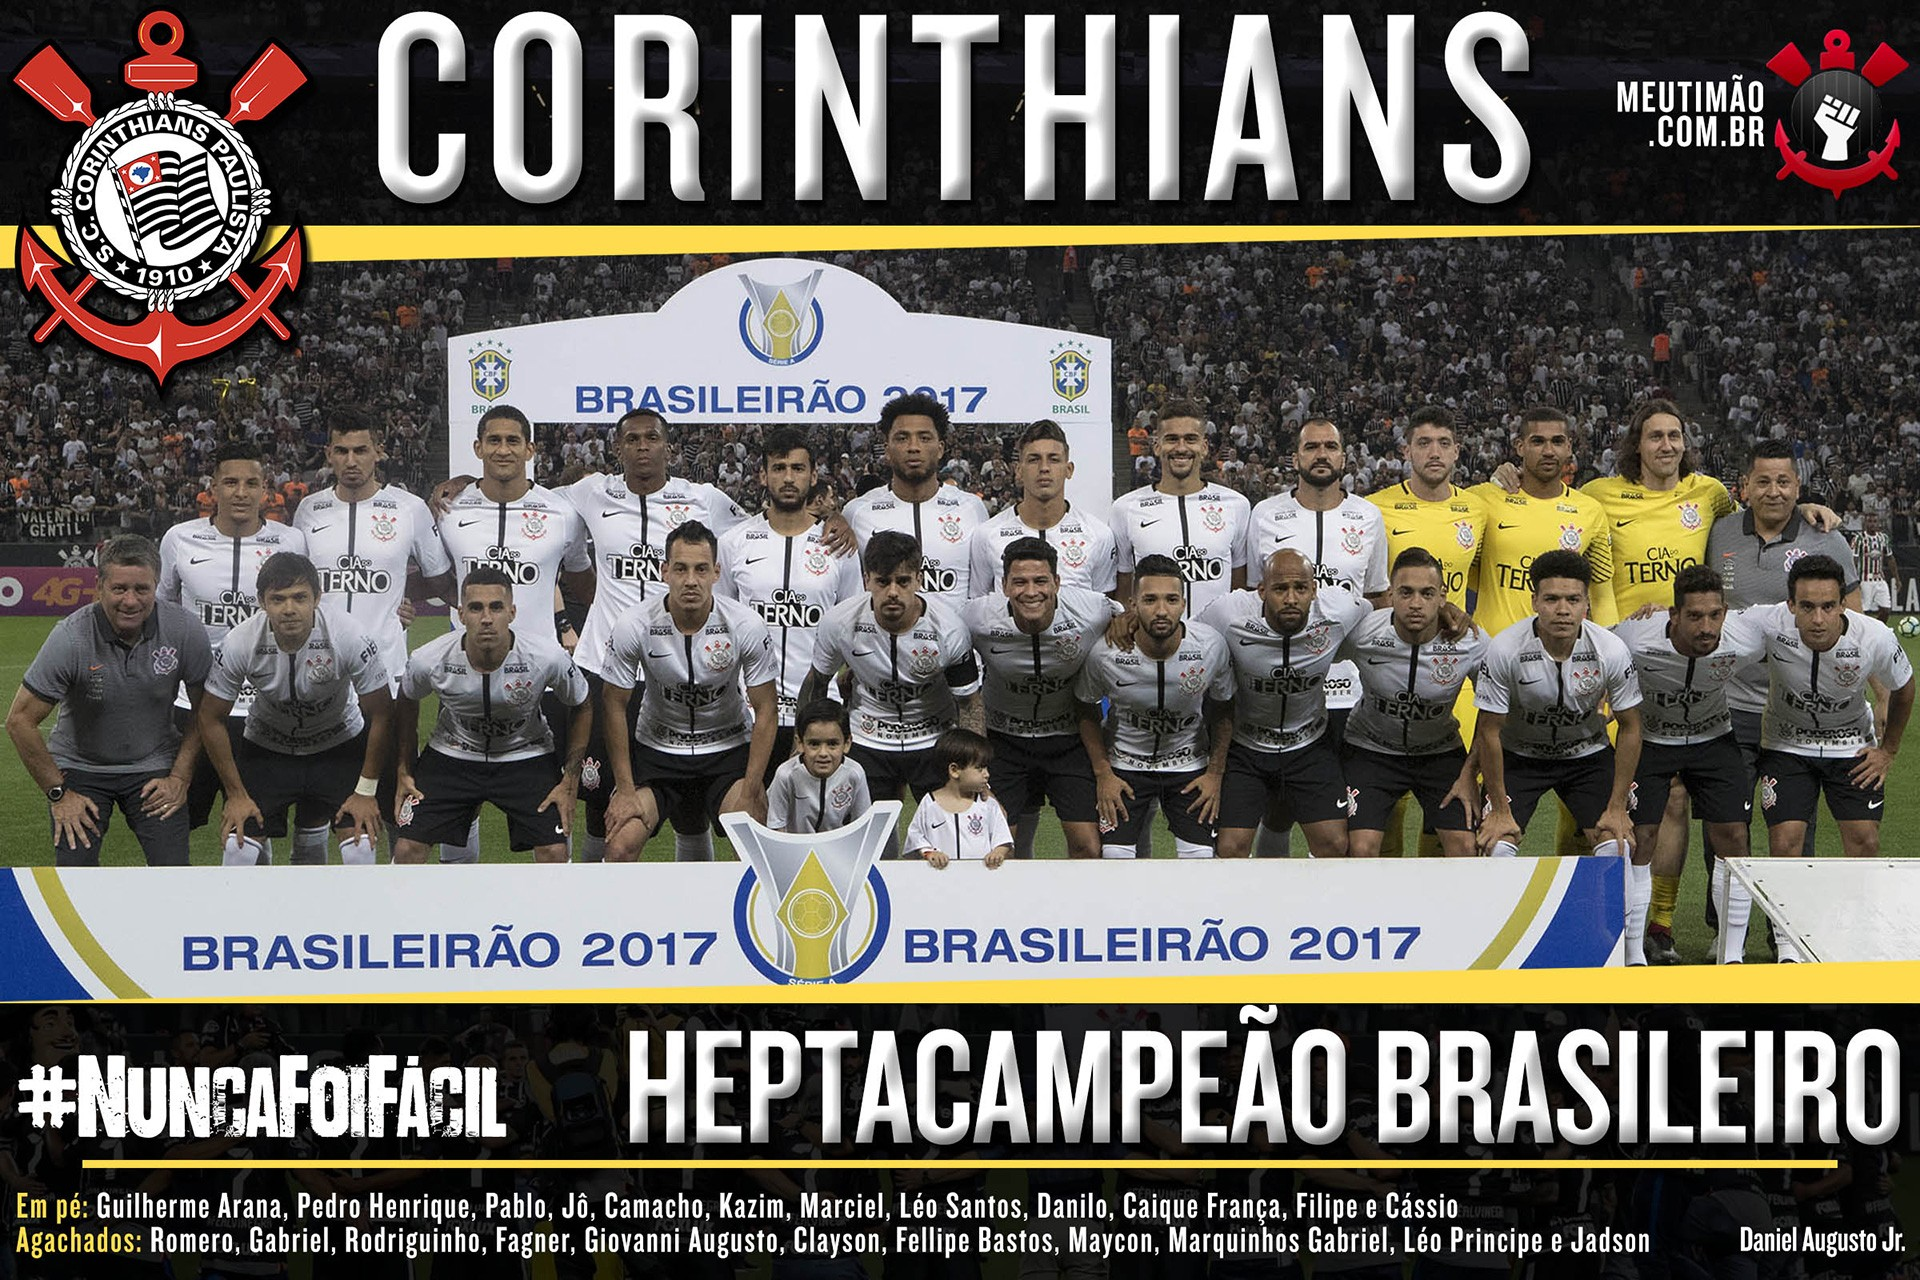 f53dfeef8f Wallpaper do Corinthians  Poster do heptacampeonato do Corinthians